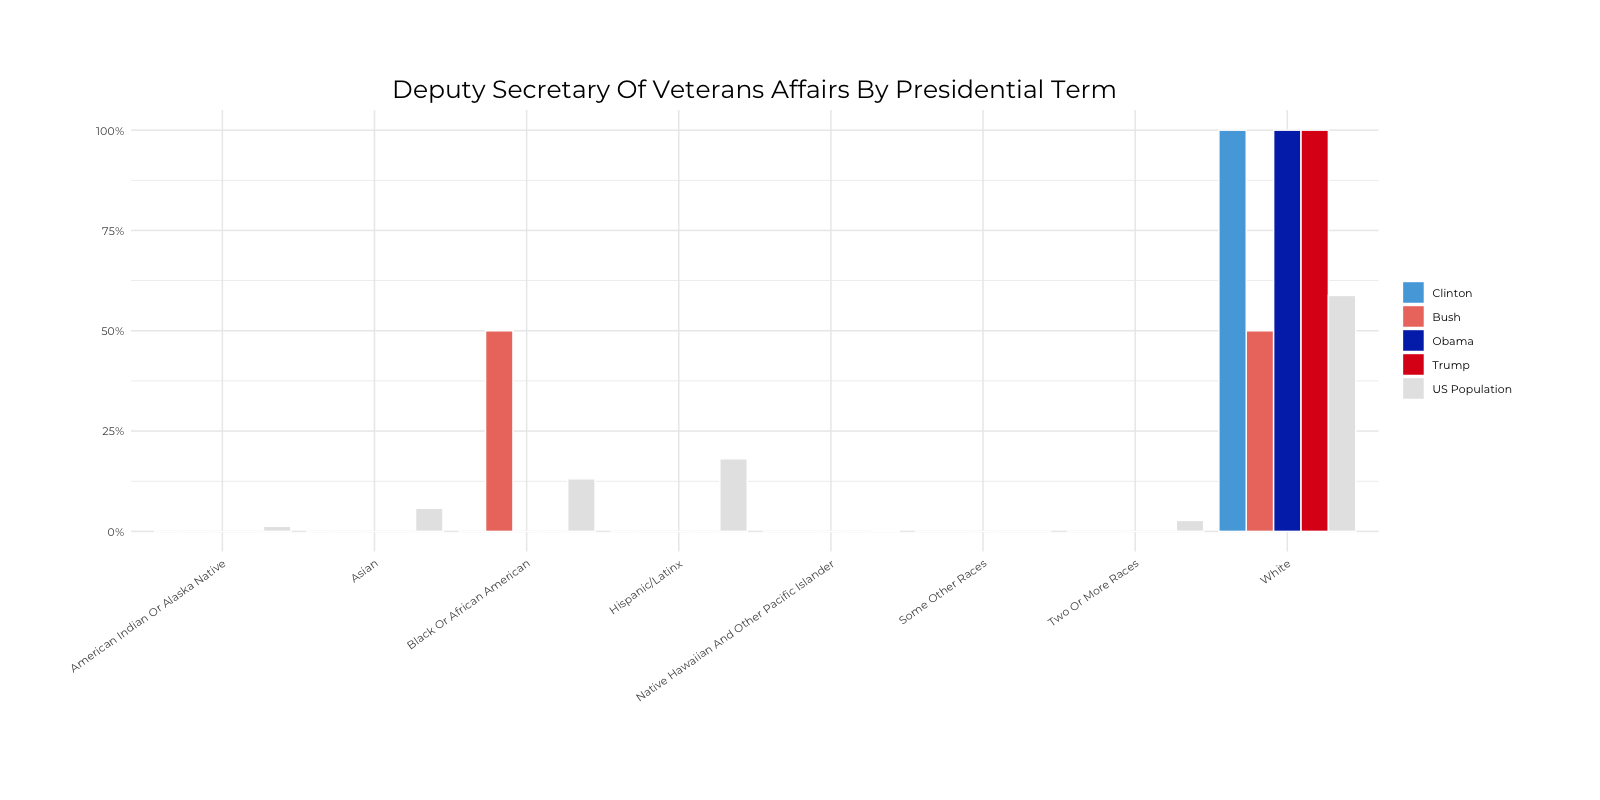 Graph about Racial Composition Comparison of Deputy Secretary of Veterans Affairs by Presidential Terms. More detailed text description below.